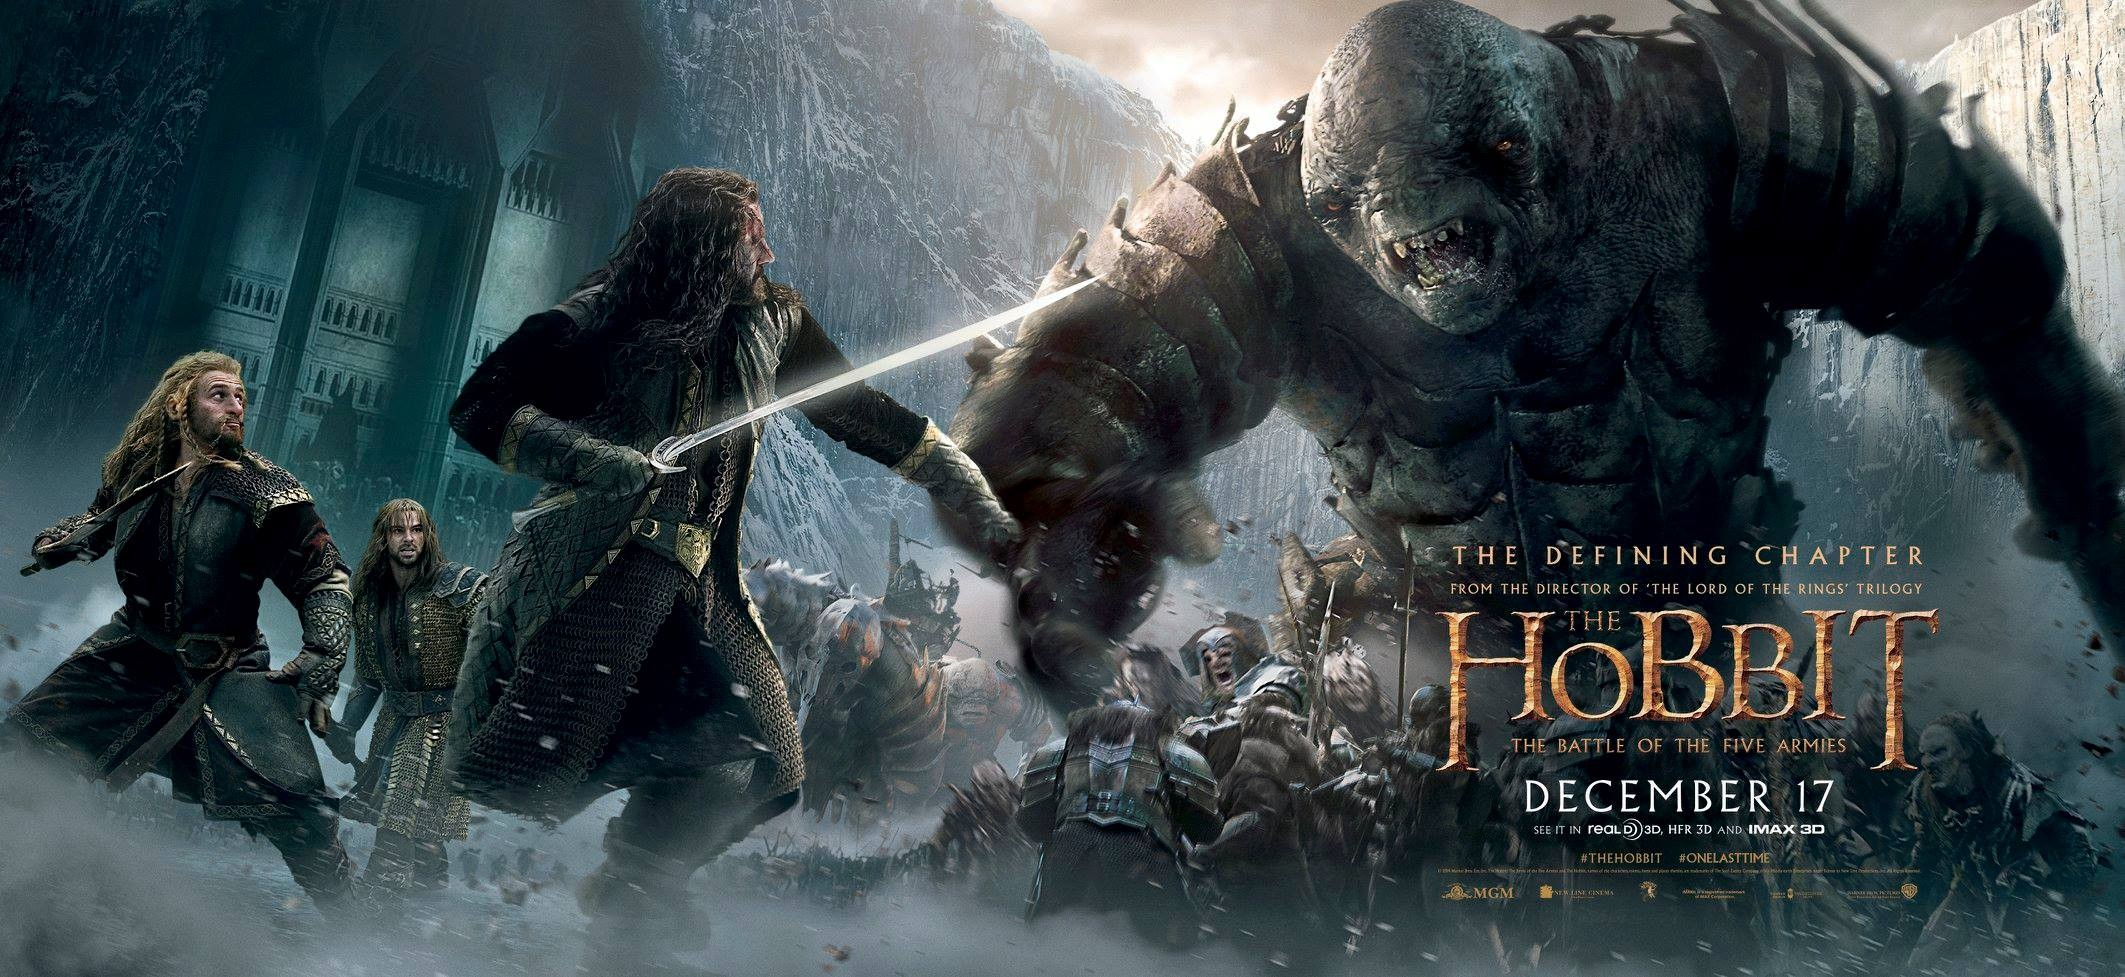 The Hobbit The Battle of the Five Armies Poster #23Reggie ...